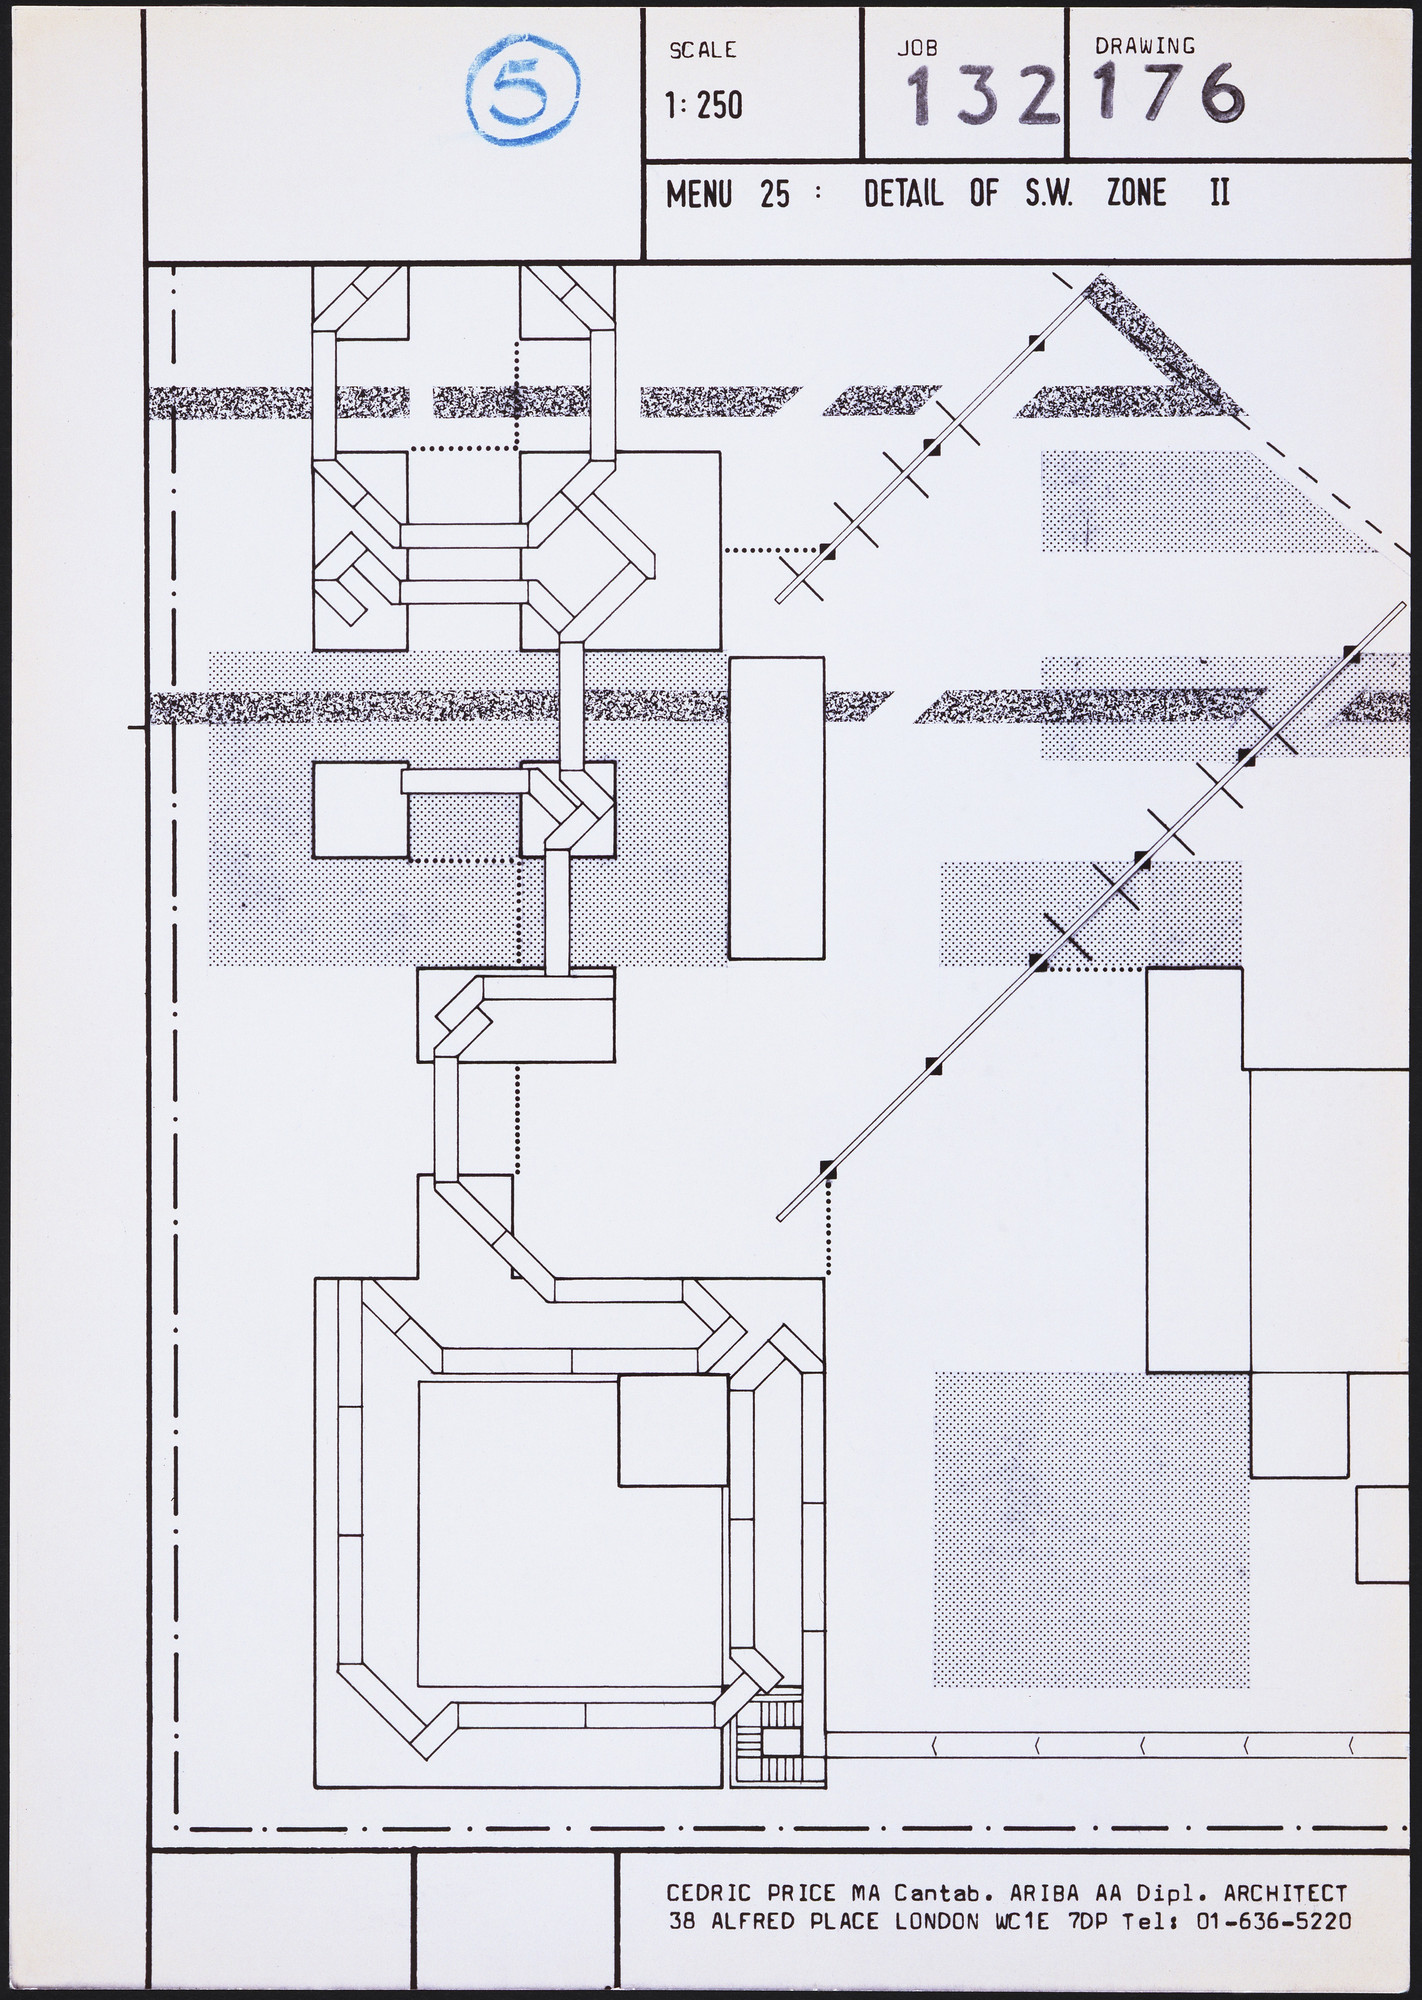 Cedric Price. Generator Project, White Oak, Florida, Plan of Menu 25, Ddetail of S.W. Zone II. 1978-80